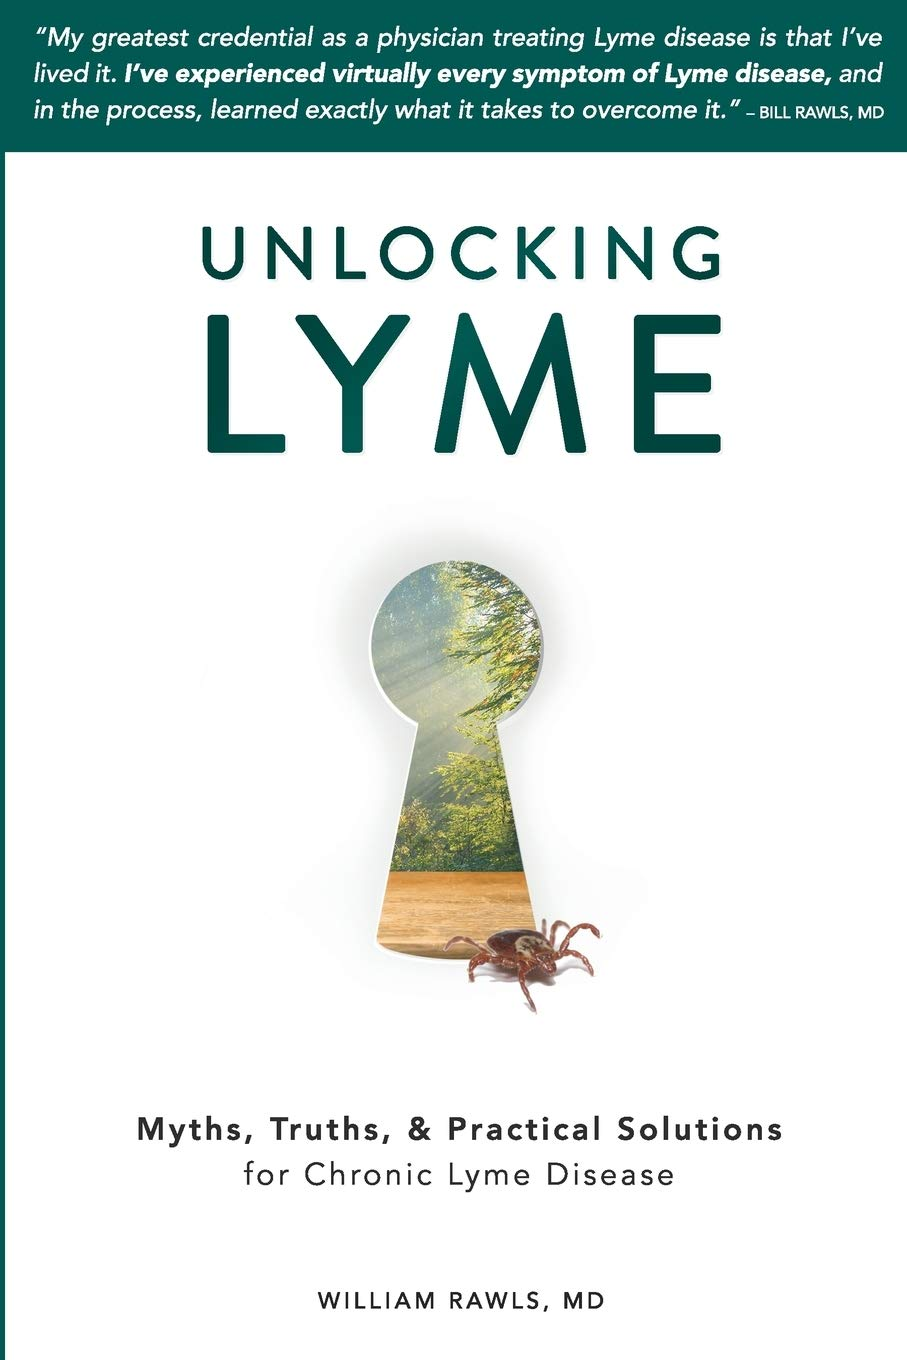 Image OfUnlocking Lyme: Myths, Truths, And Practical Solutions For Chronic Lyme Disease